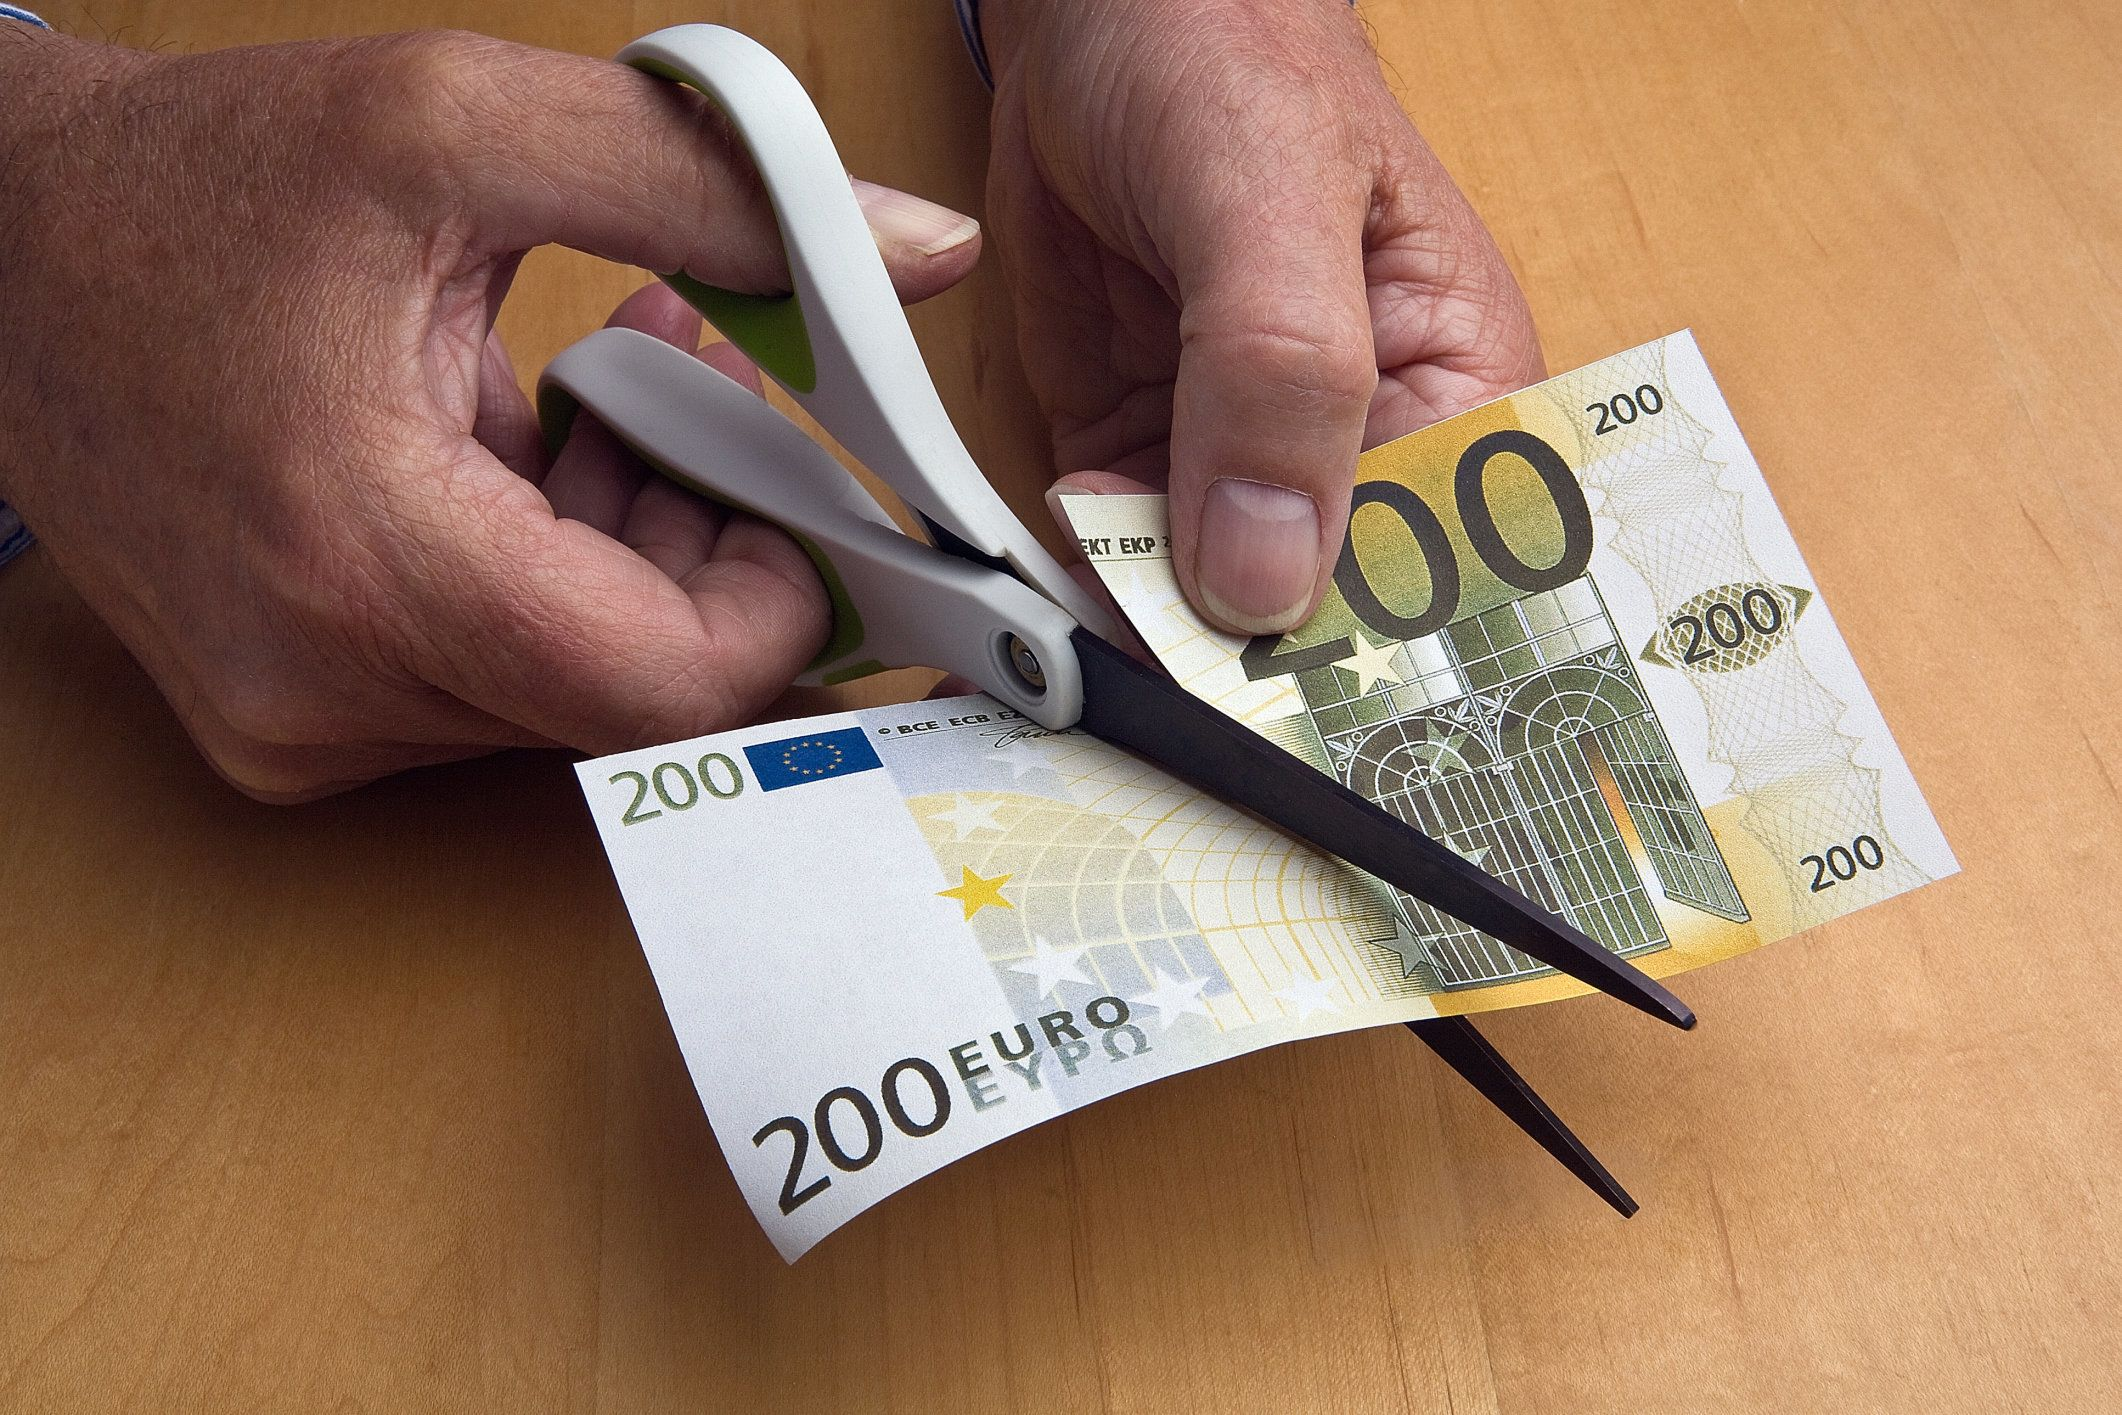 Scissors slice through euro banknote.